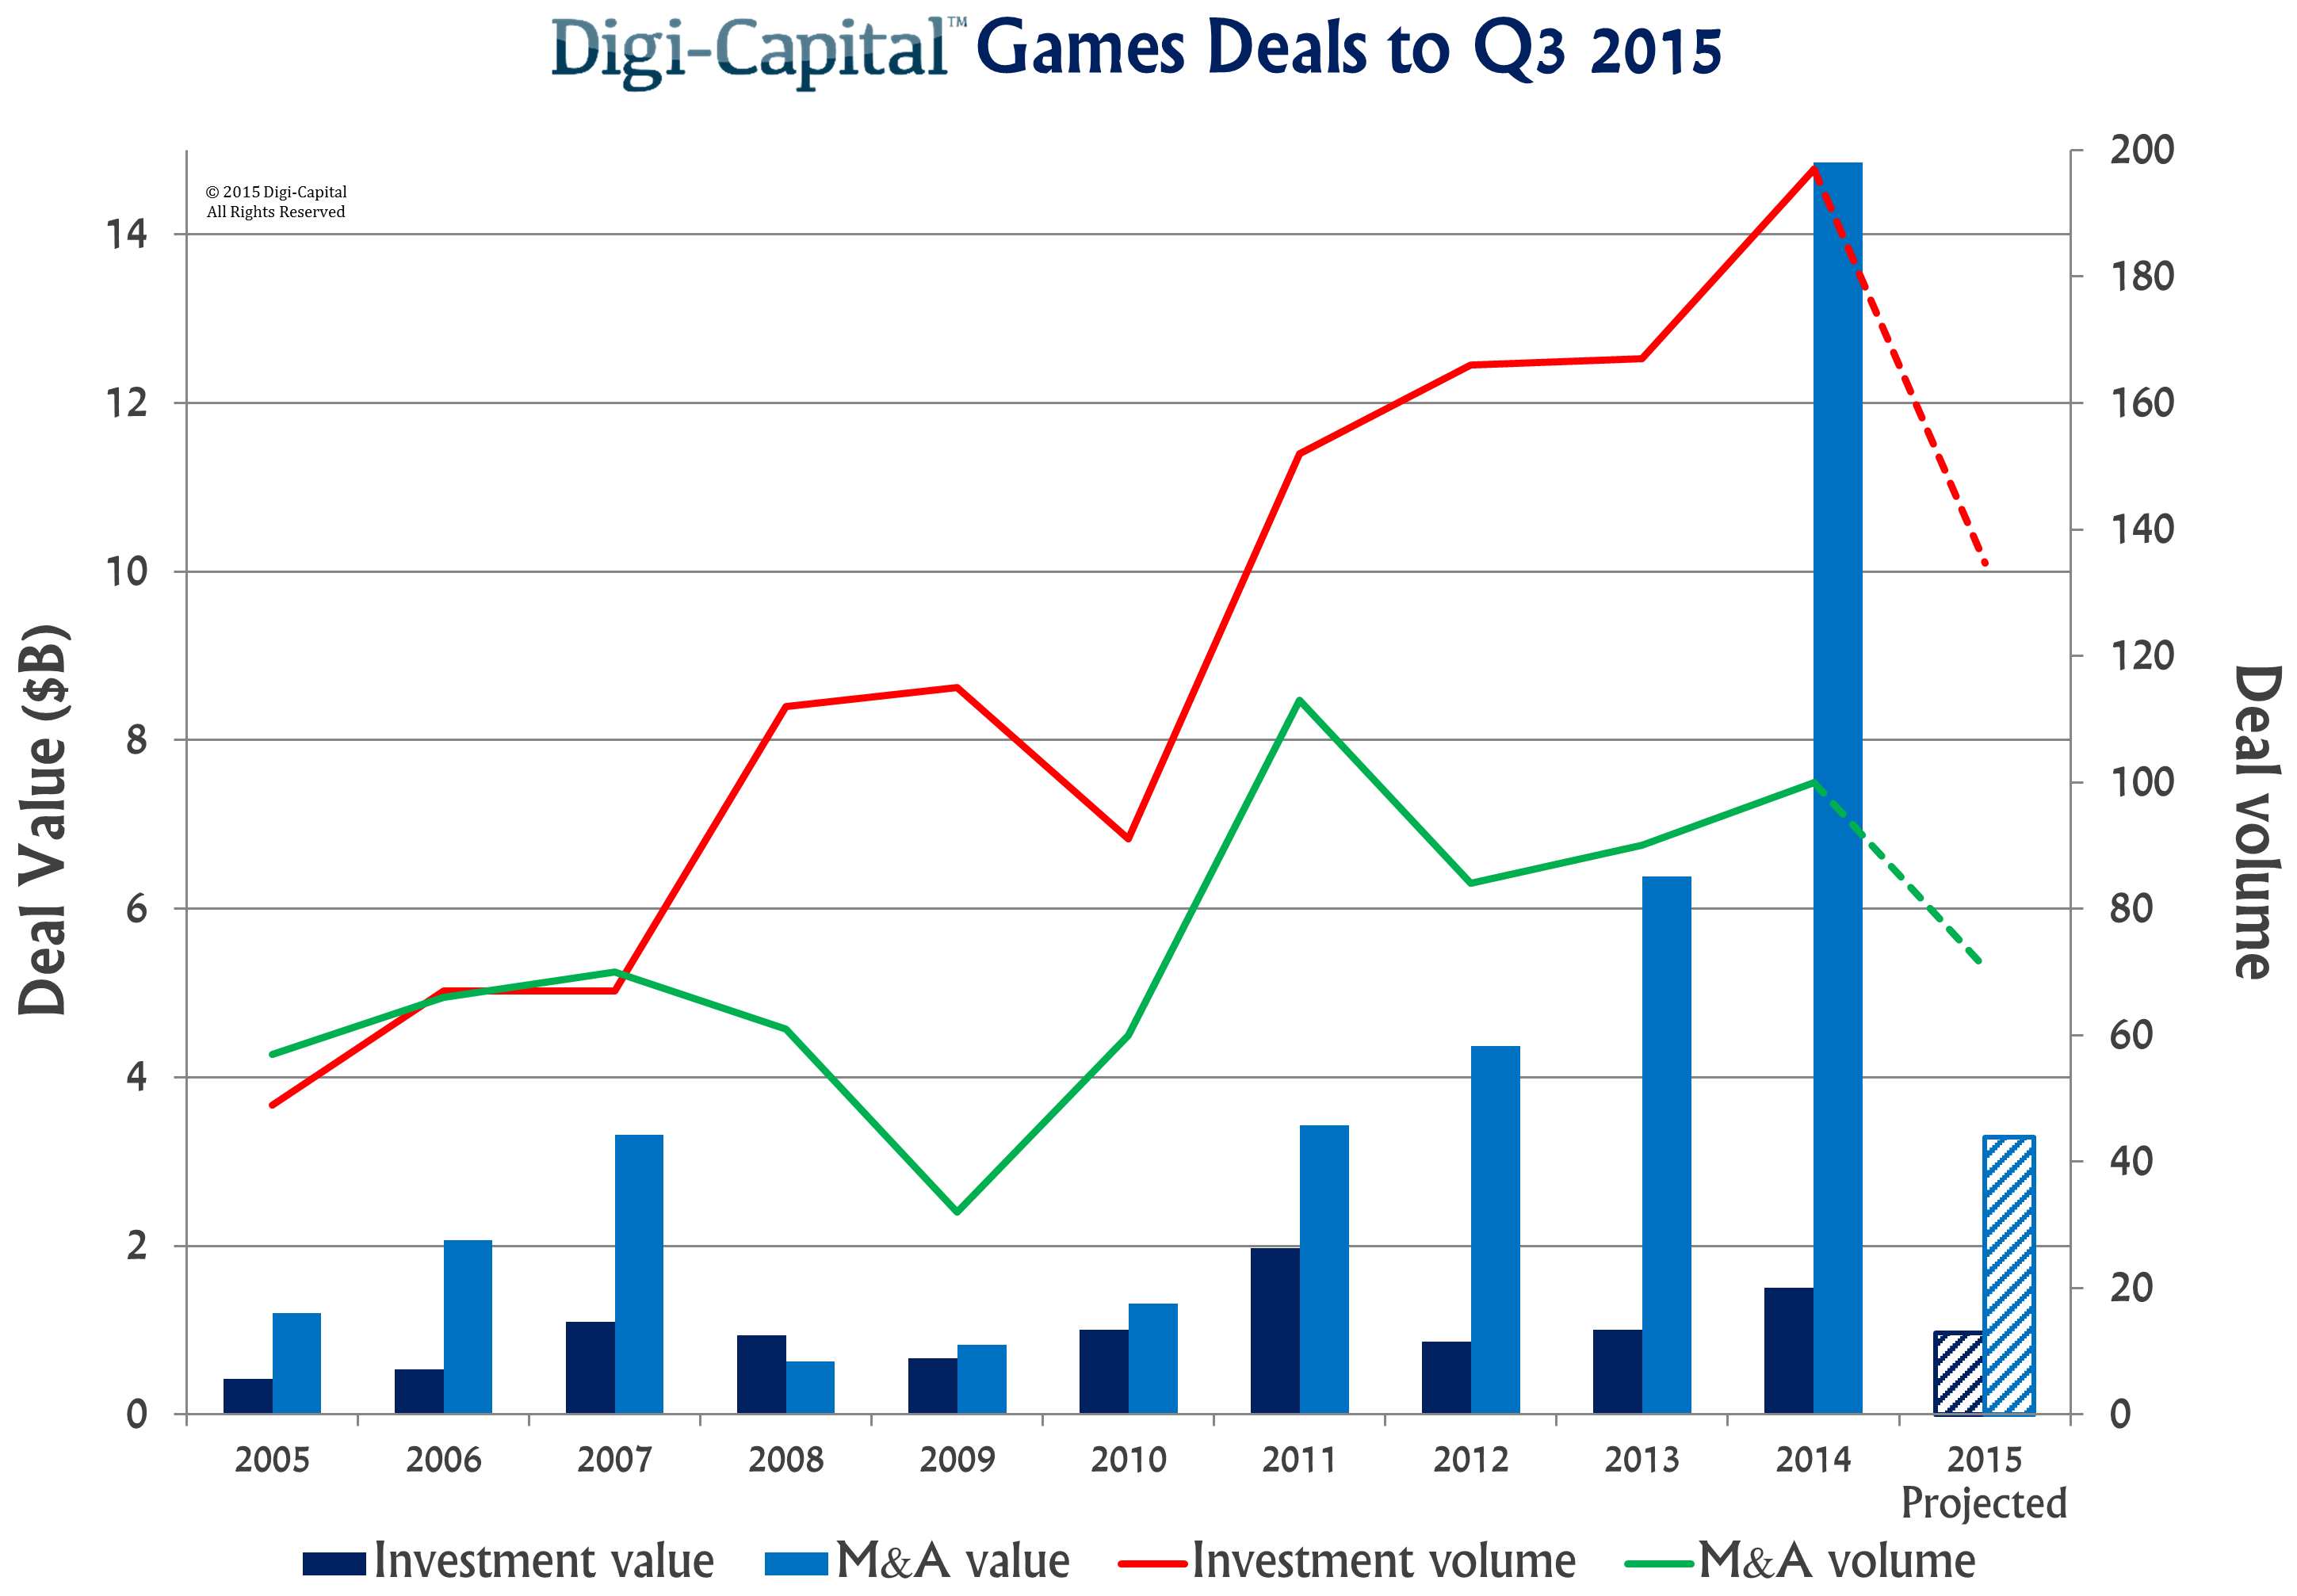 Digi-Capital Games Deals to Q3 2015